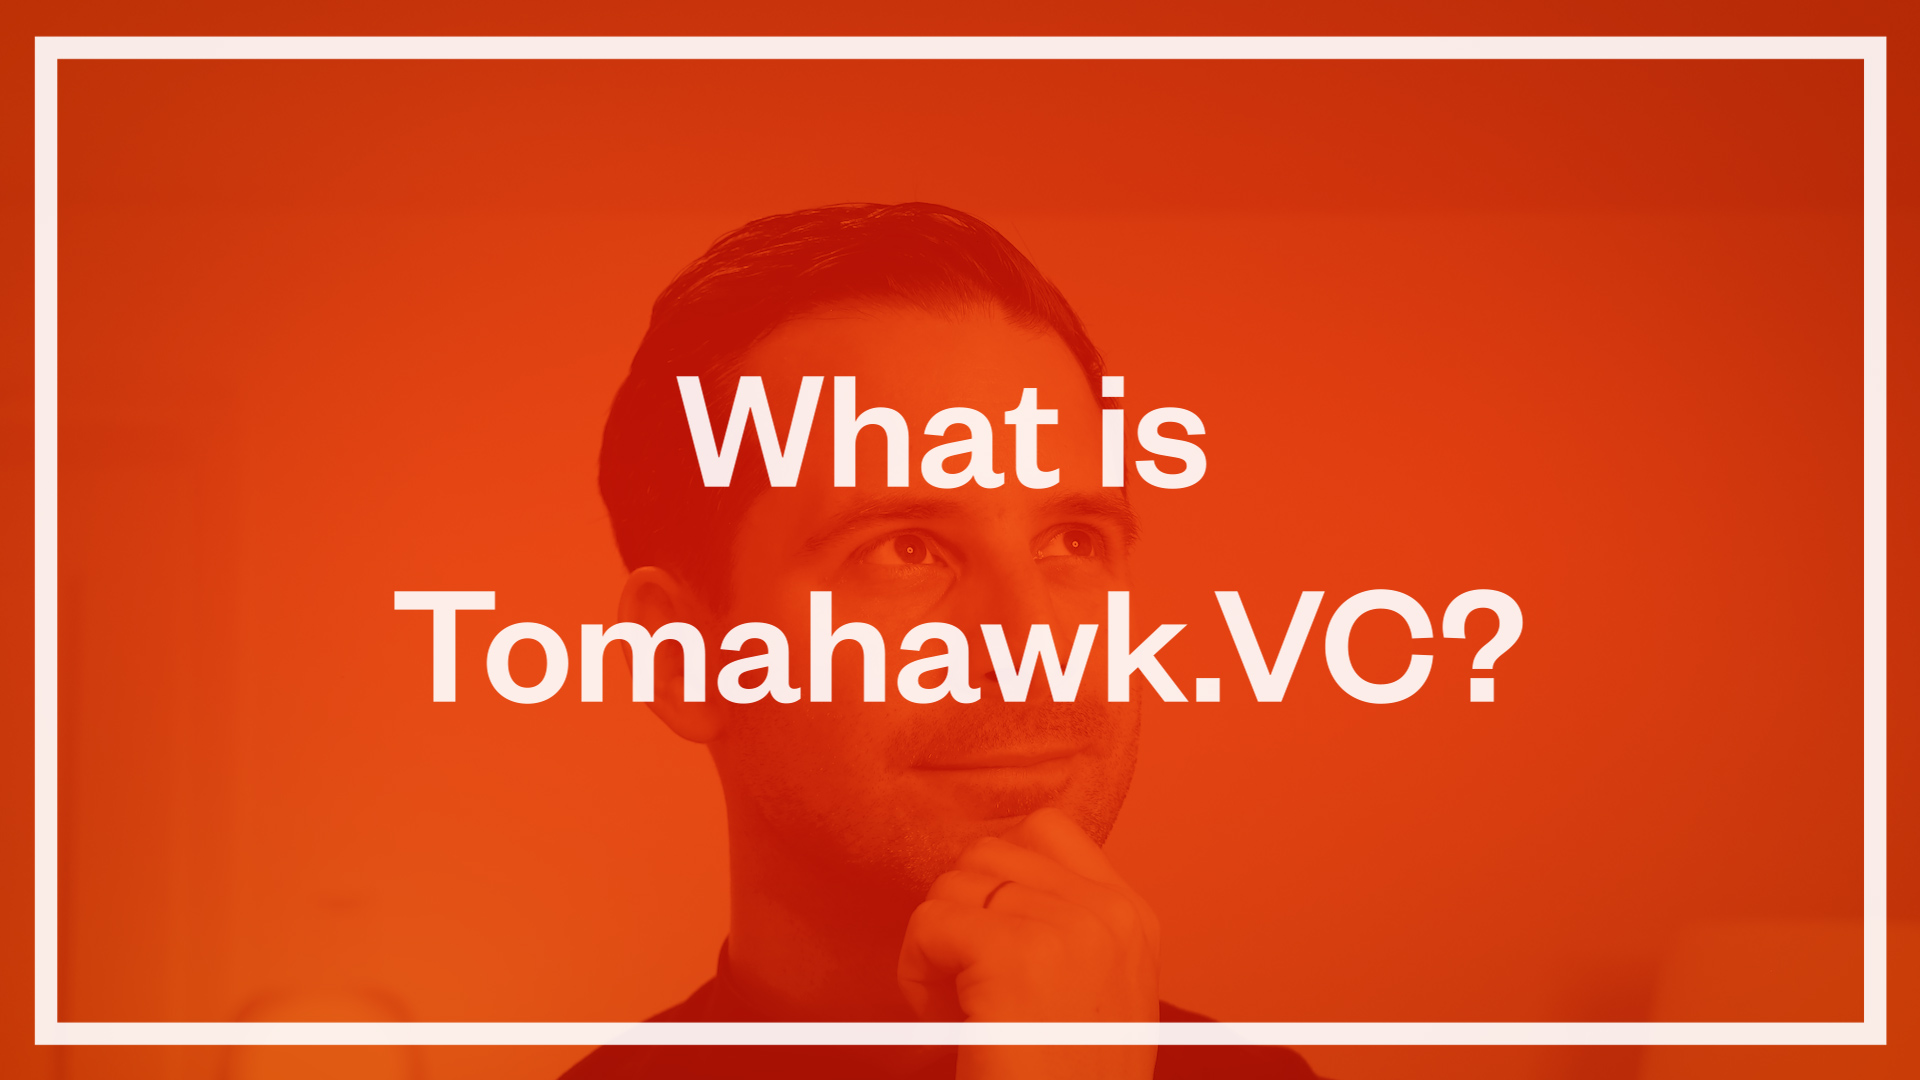 What is Tomahawk.VC?